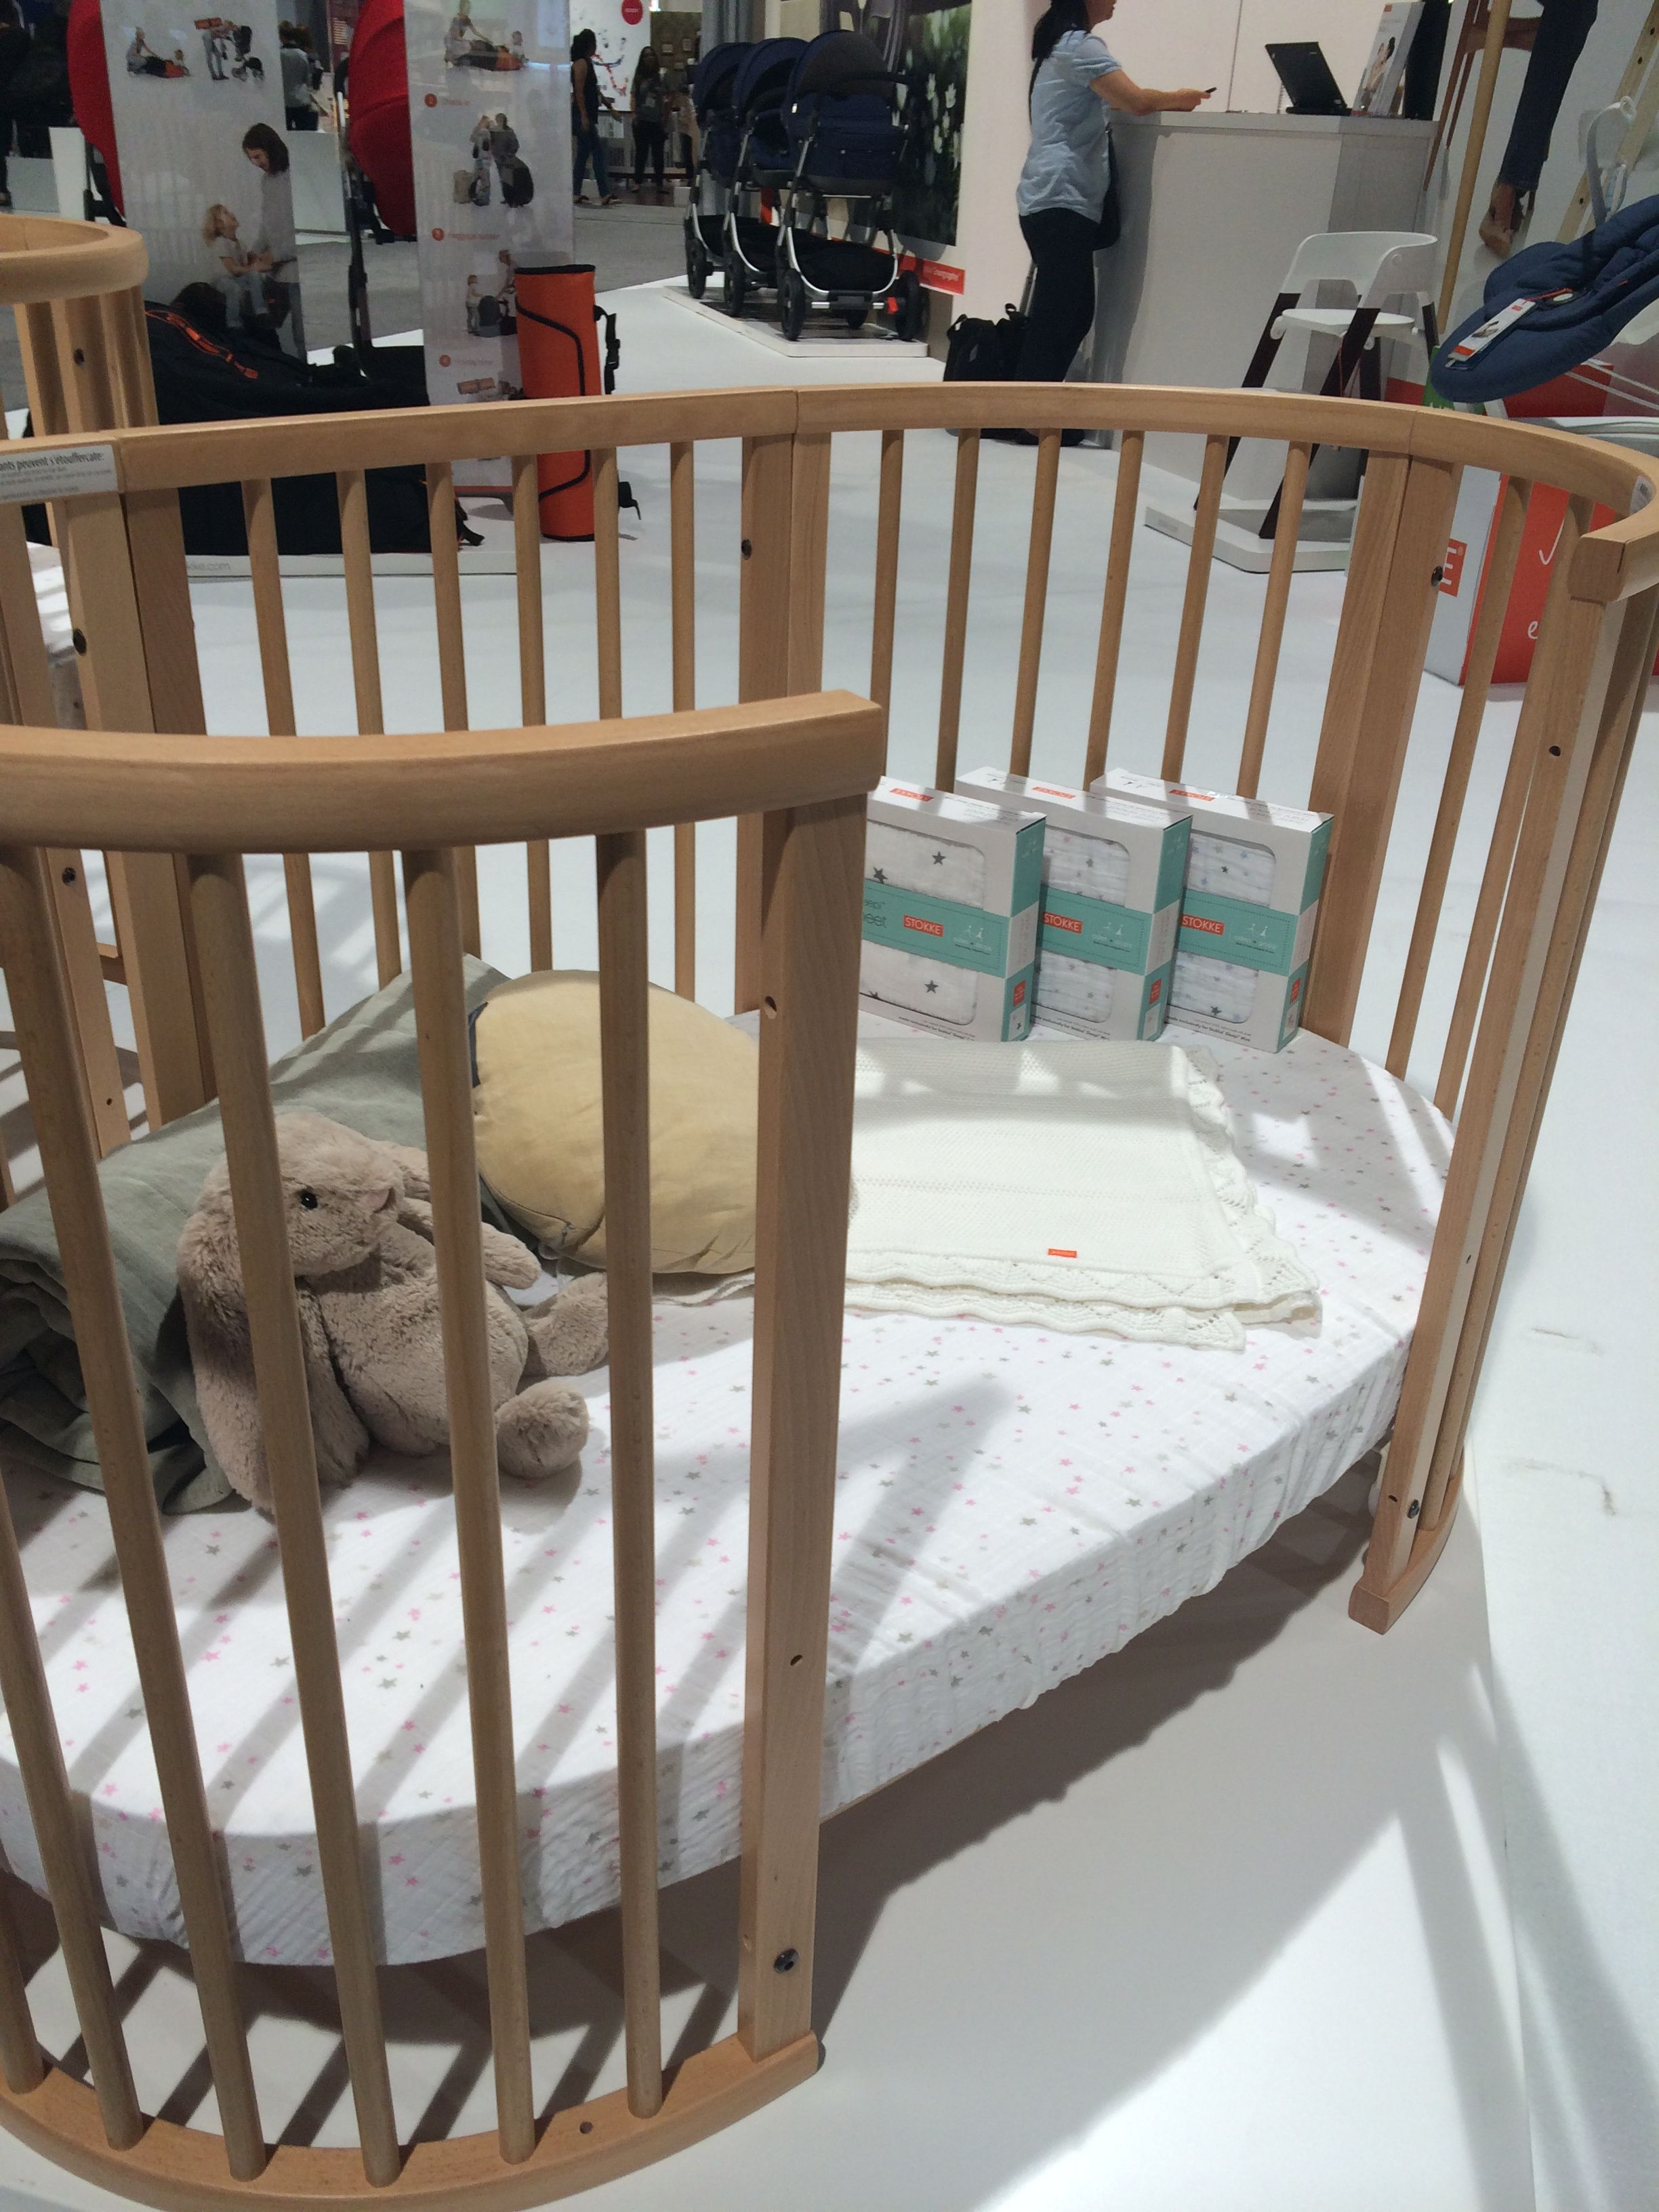 Modern Furniture Expo stokke sleepi crib grows with baby into toddler bed & junior bed